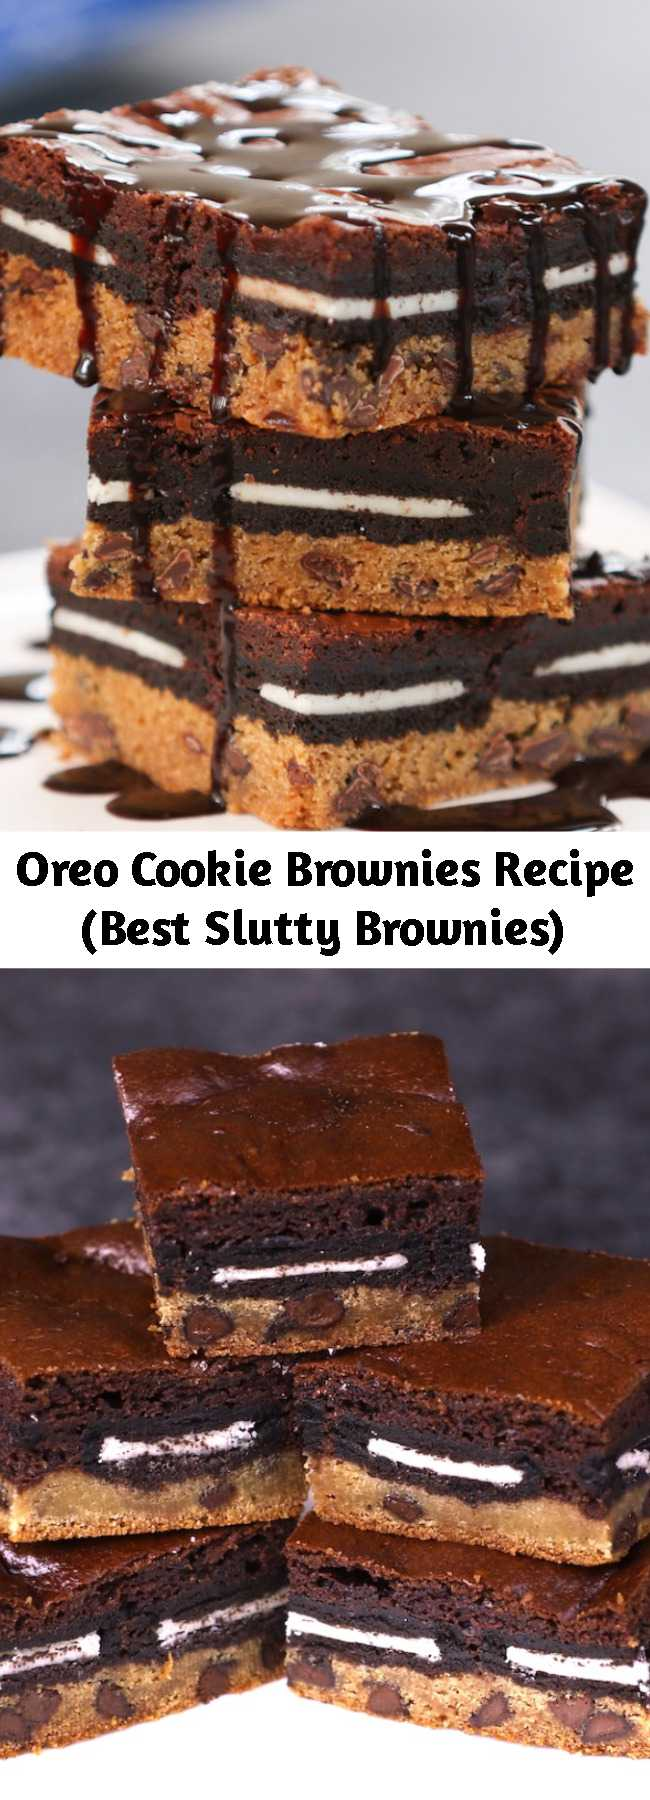 Oreo Cookie Brownies Recipe (Best Slutty Brownies) - These Slutty Brownies melt in your mouth with rich layers of cookie dough, Oreo cookies and brownies. This slutty brownie recipe is easy to make whenever you want an extra-decadent treat!